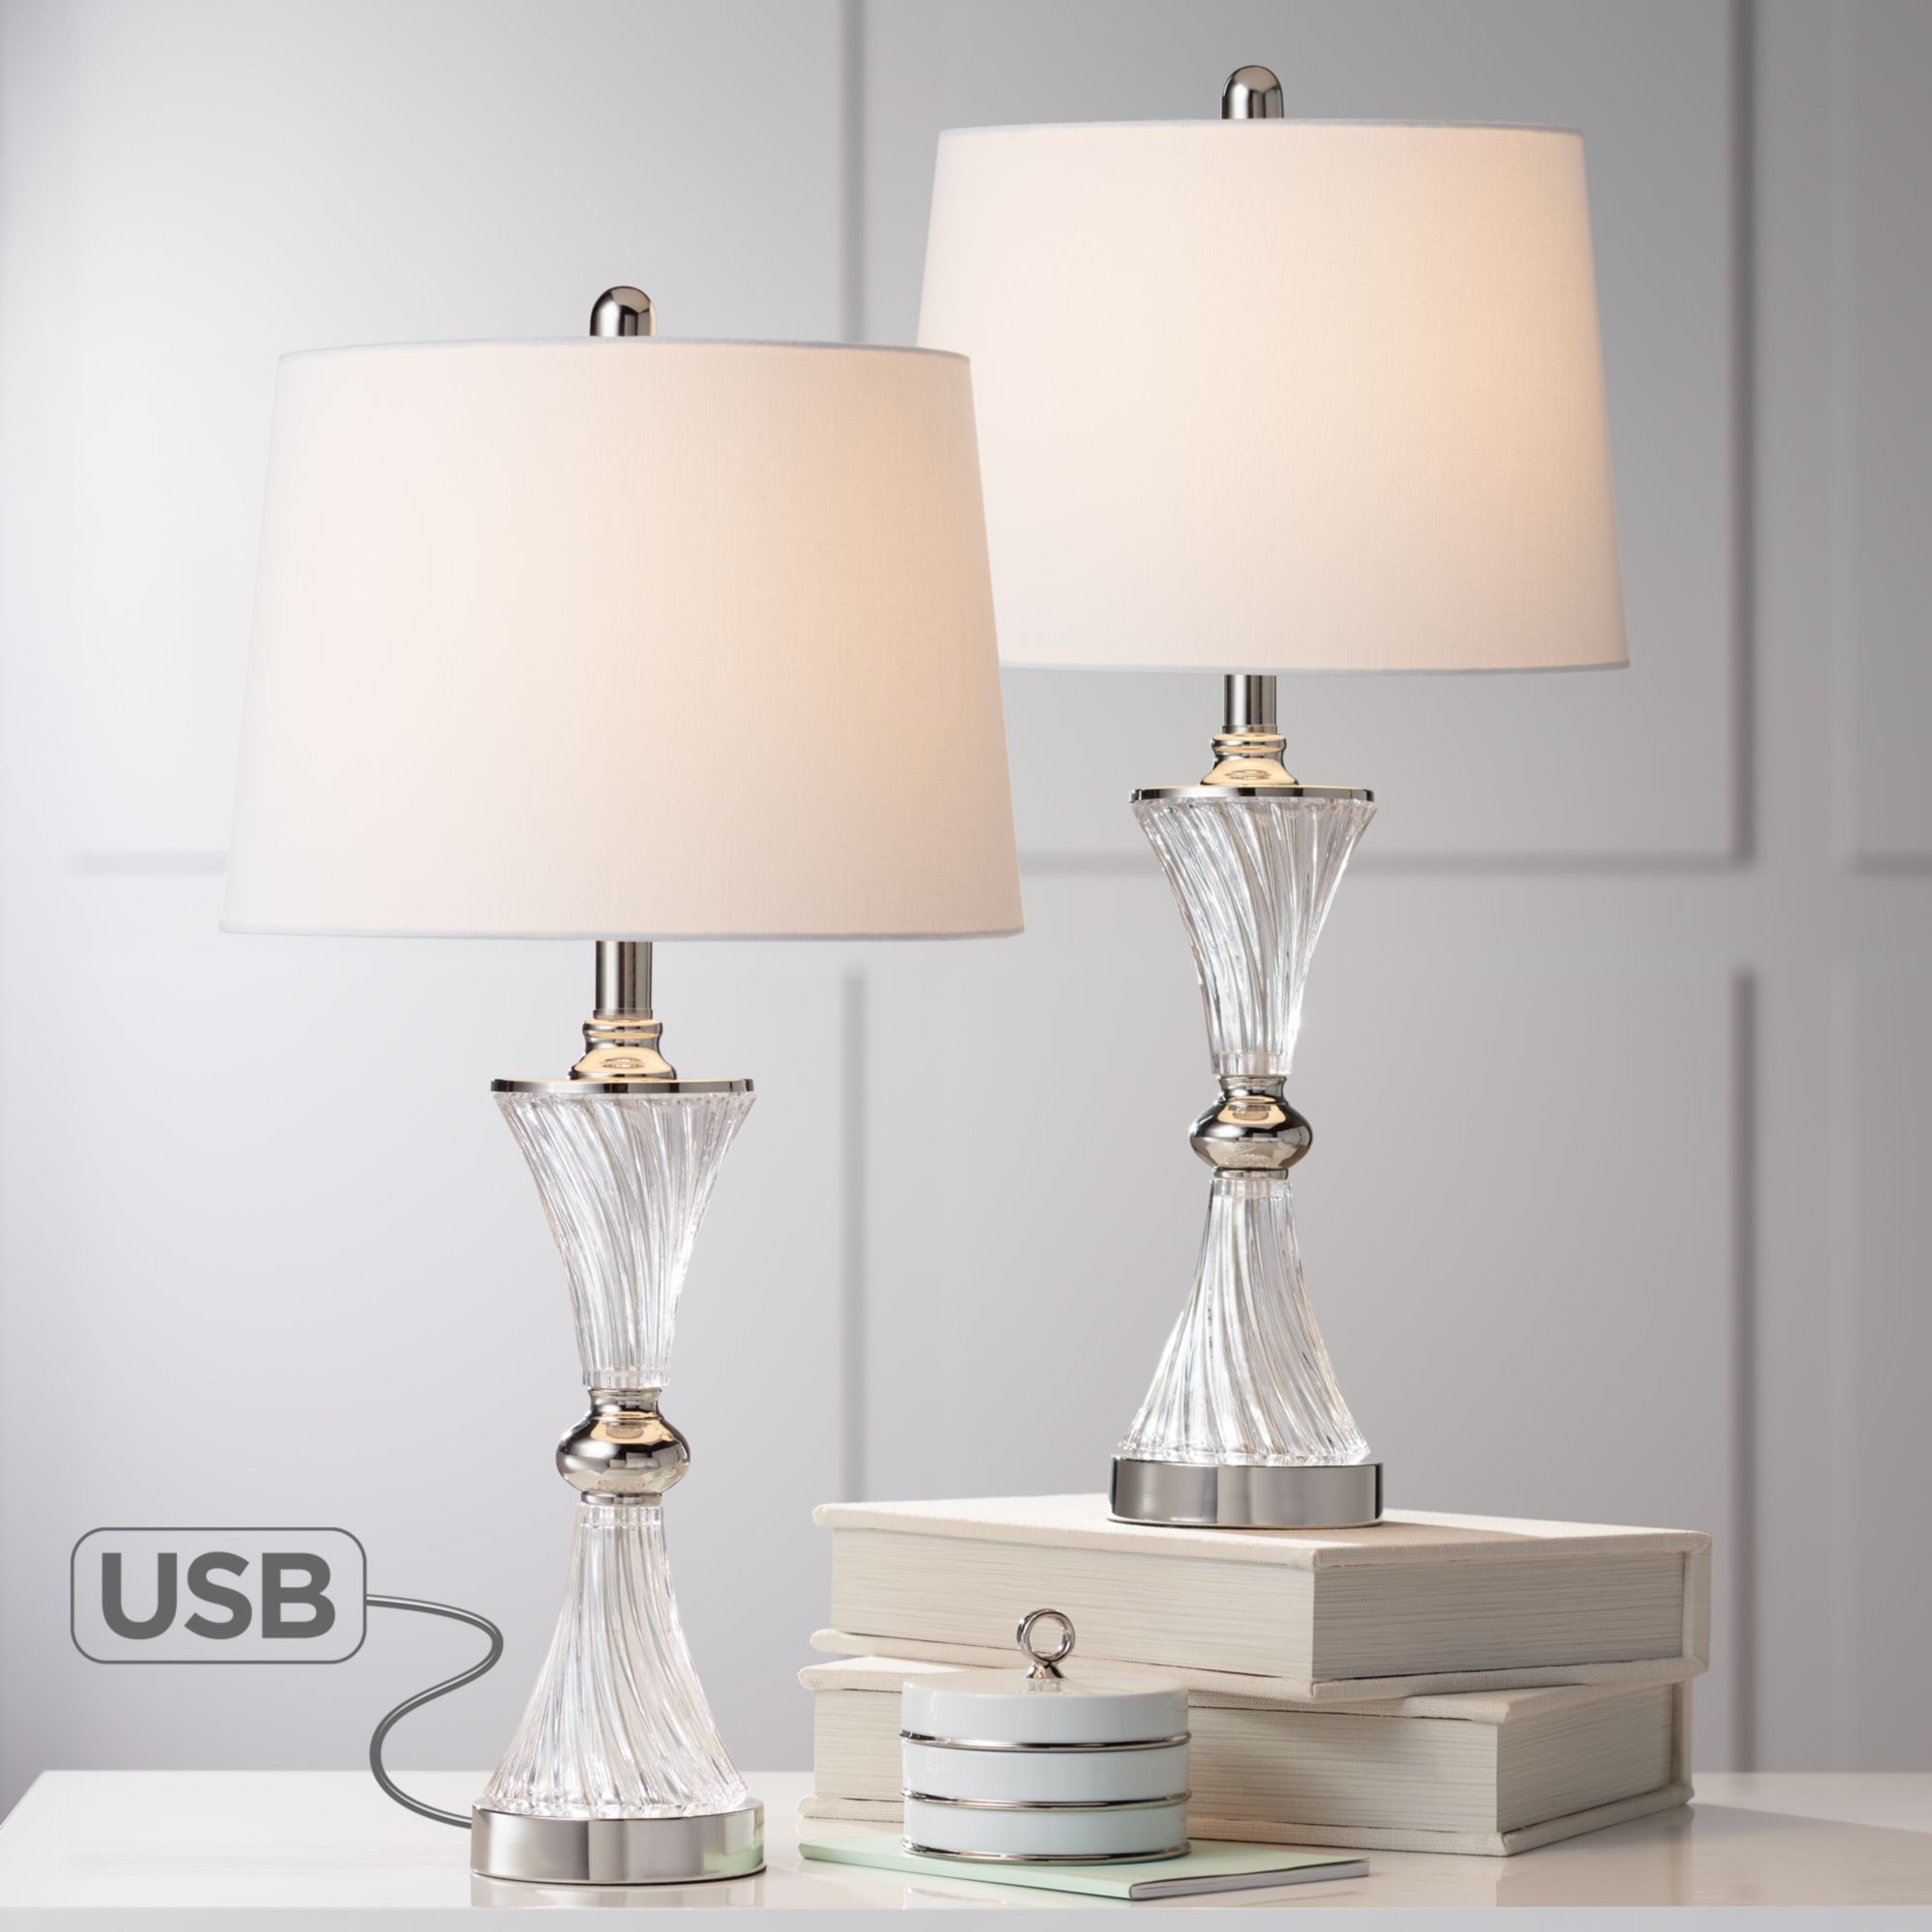 Modern Table Lamps Set Of 2 With Usb Brushed Steel Living